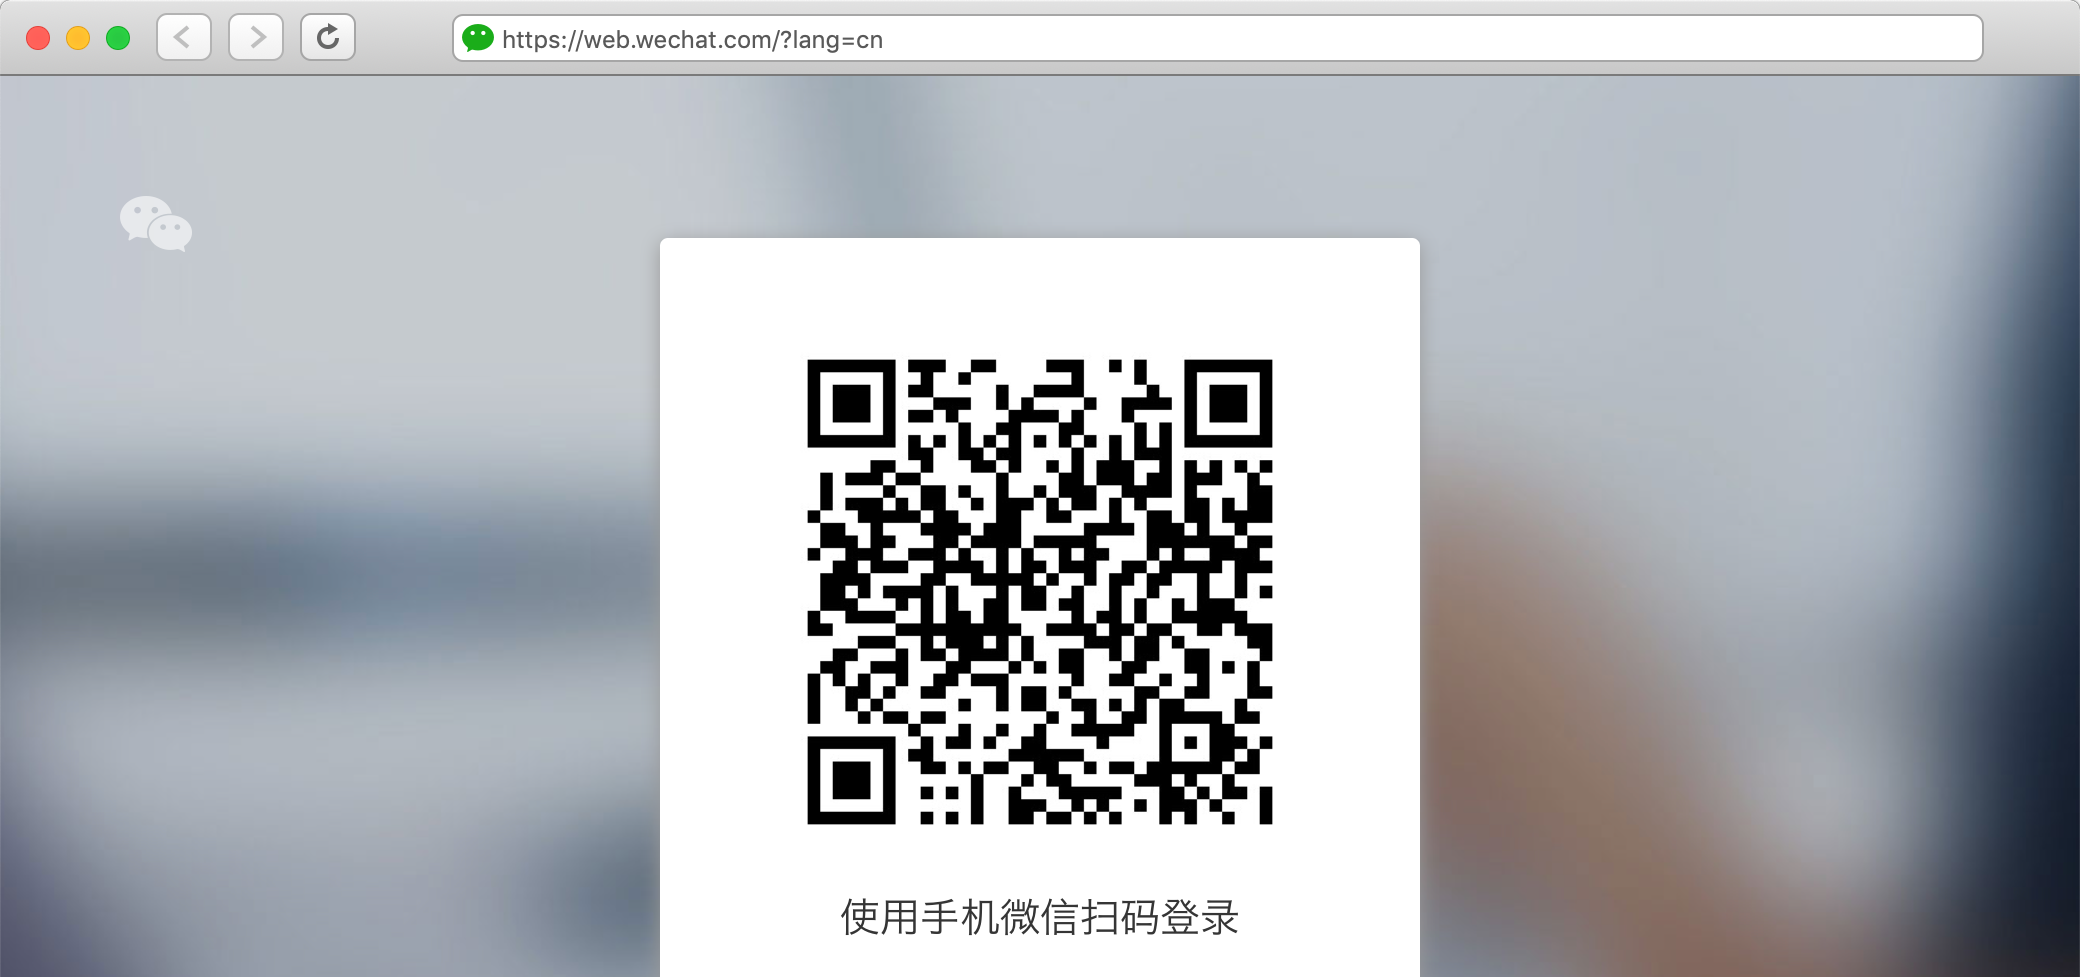 Line busy wechat How to